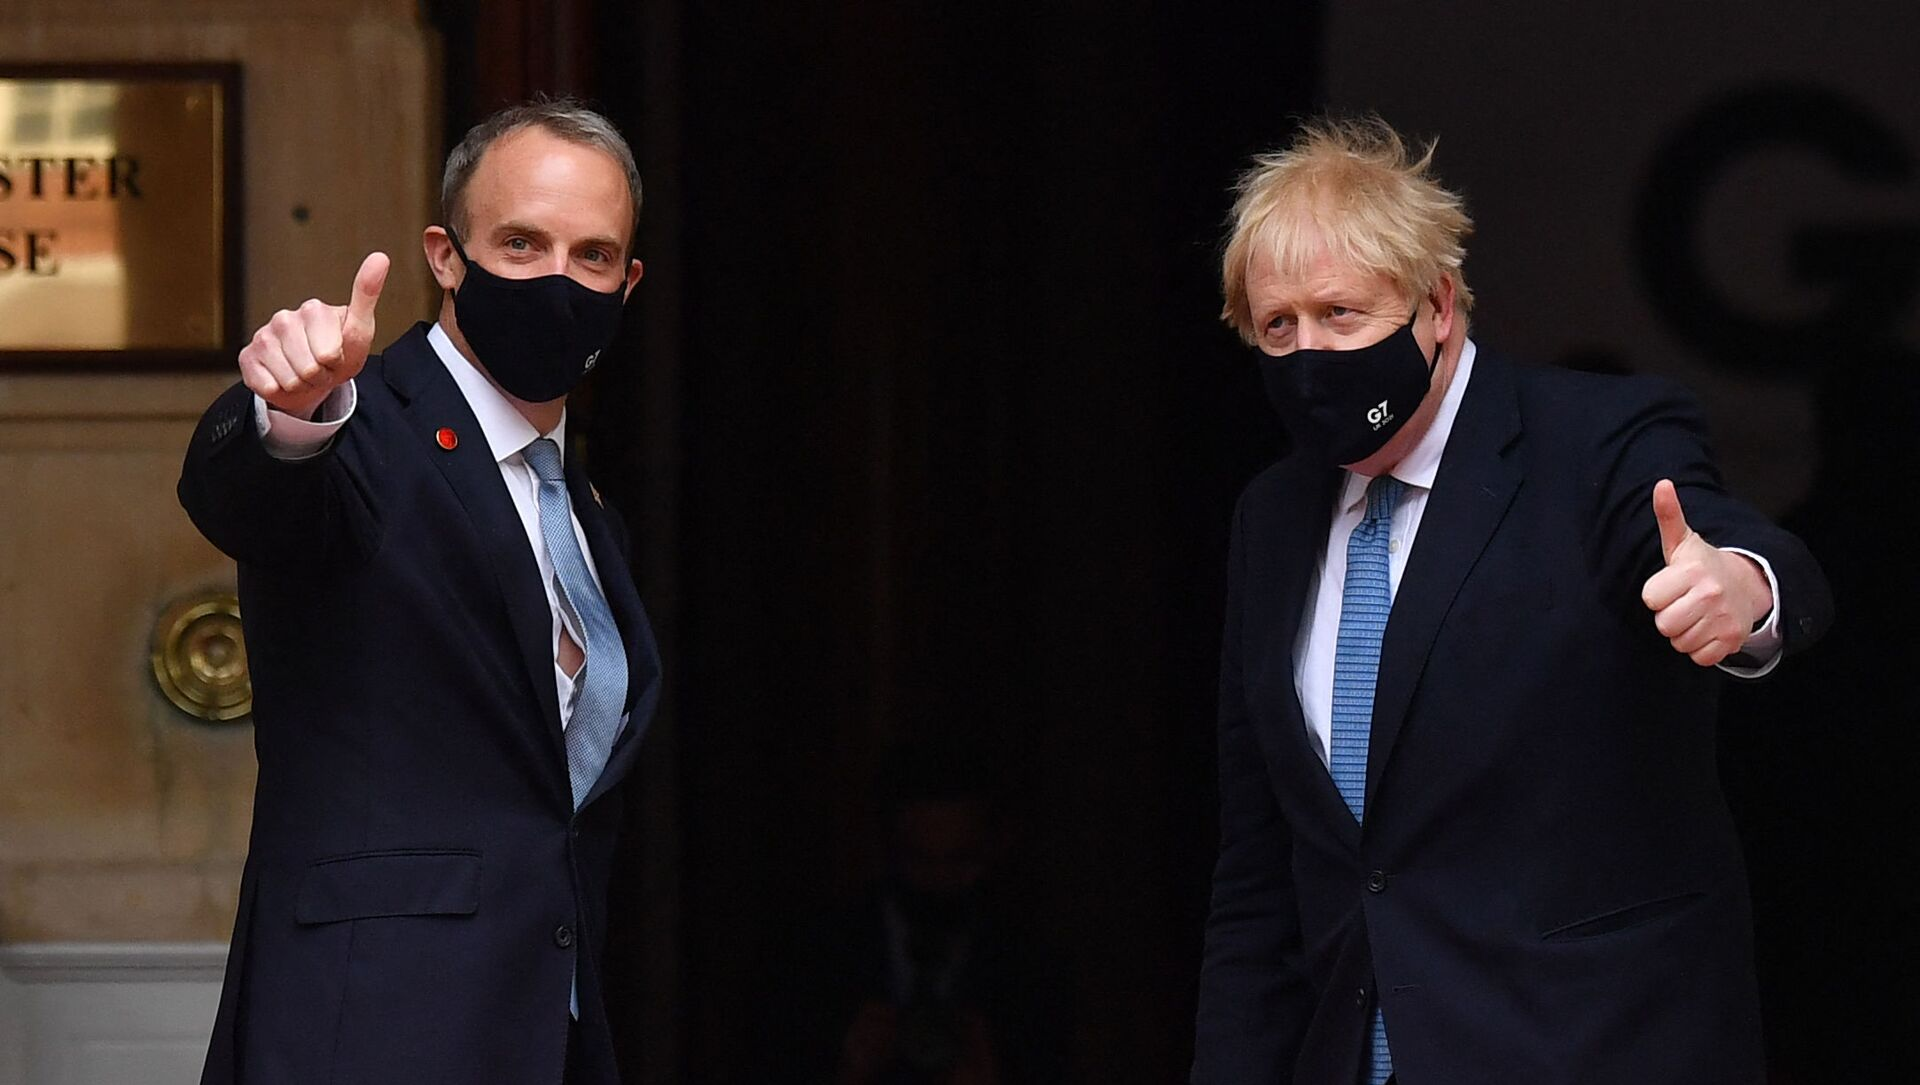 Britain's Prime Minister Boris Johnson (R) poses with Britain's Foreign Secretary Dominic Raab as he arrives at the G7 foreign ministers meeting in London on May 5, 2021 - Sputnik International, 1920, 17.08.2021